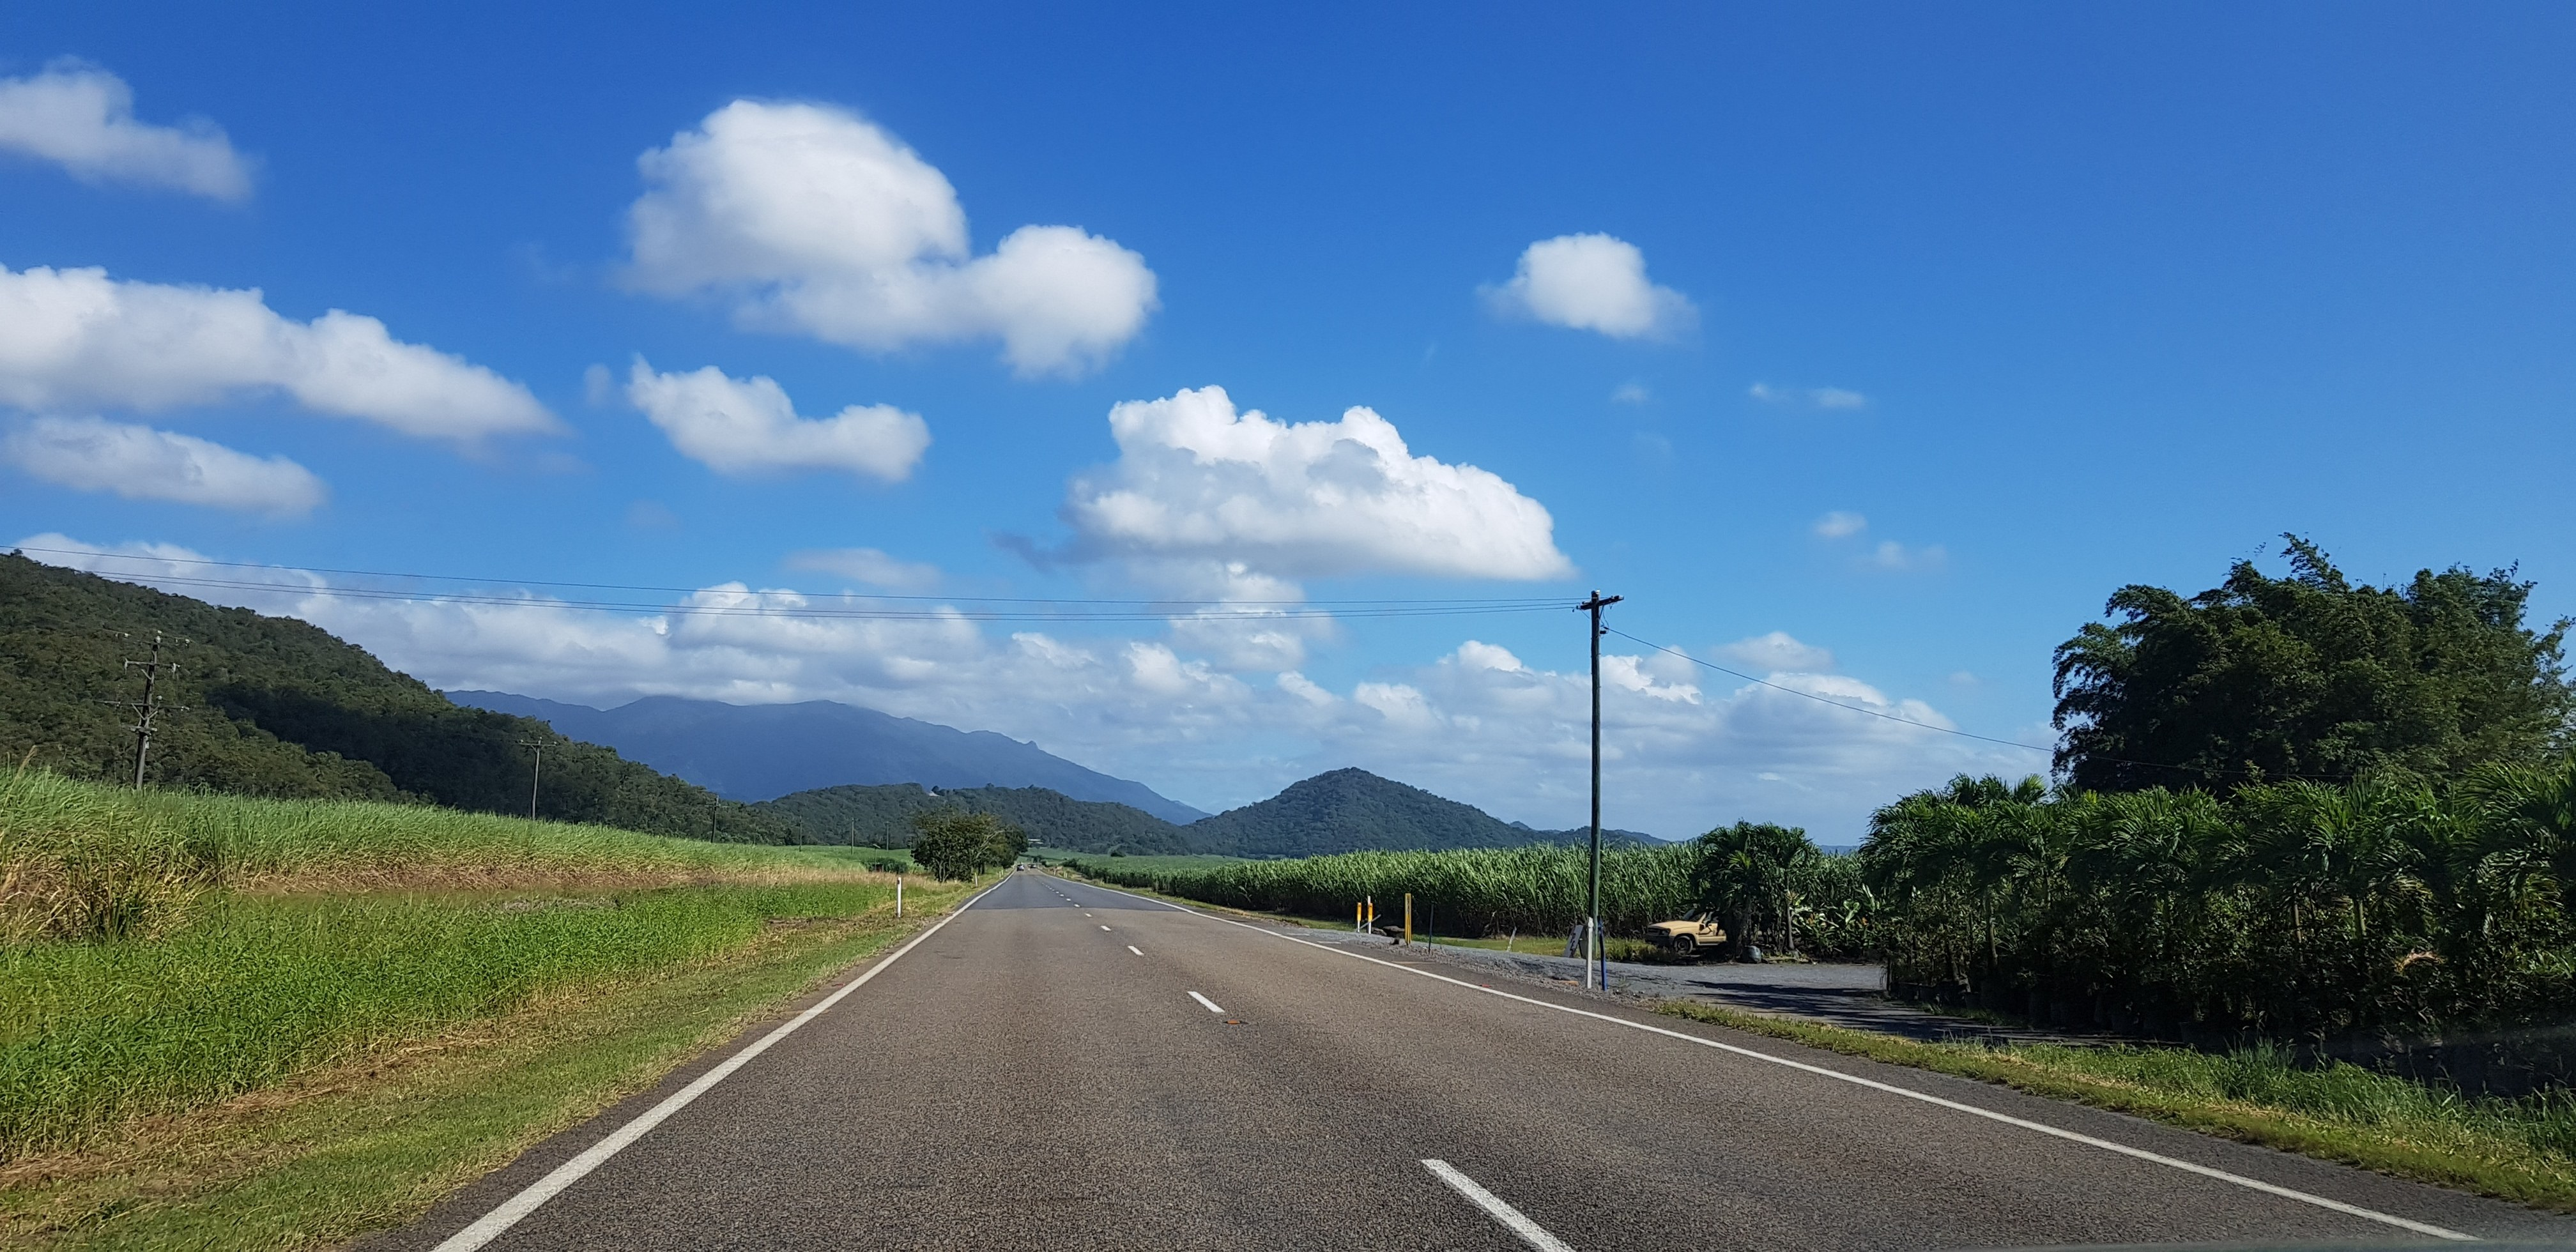 The road to the Daintree river cruise centre